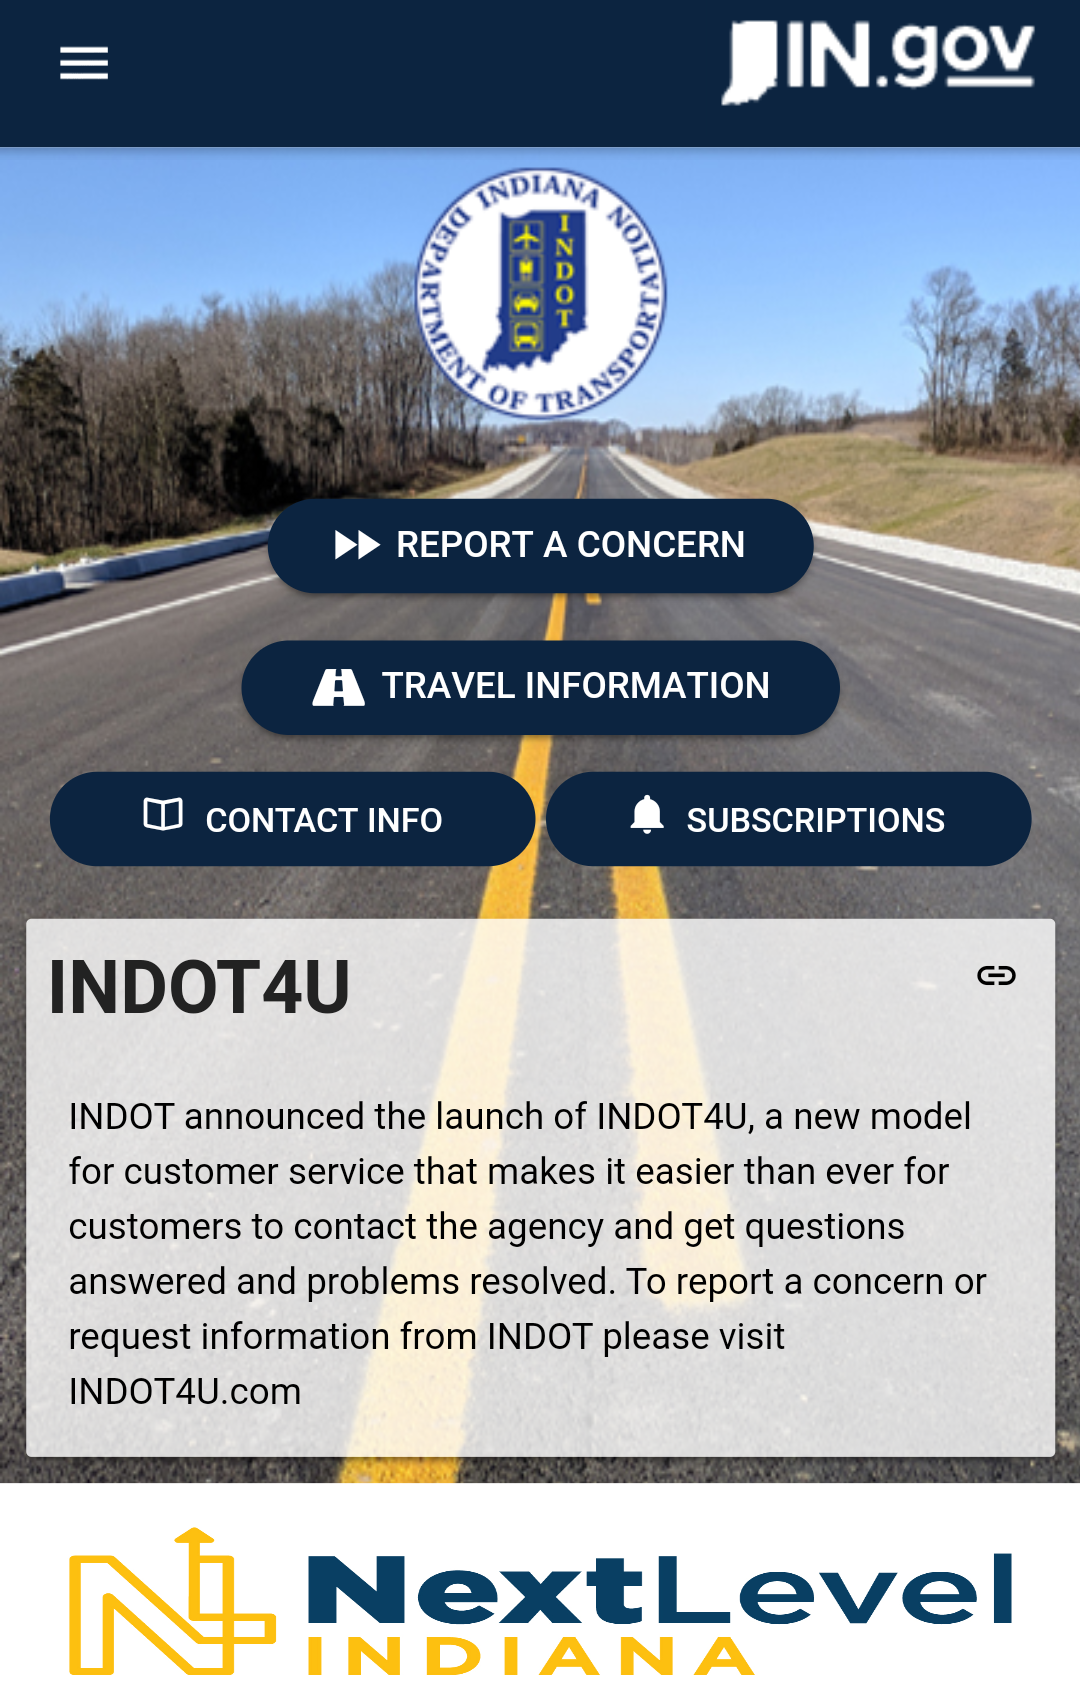 INDOT: INDOT Mobile App on indiana terrain map, indiana history map, indiana sports map, indiana activities map, indiana hunting seasons, indiana travel map, indiana snowfall totals, ohio valley road map, indiana highway cameras, indiana hospitals map, indiana utilities map, indiana wildlife map, indiana time map, indiana zoning map, in road map, county road map, indiana map with ohio river, indiana driving map, indiana highway road conditions, indiana gas prices map,